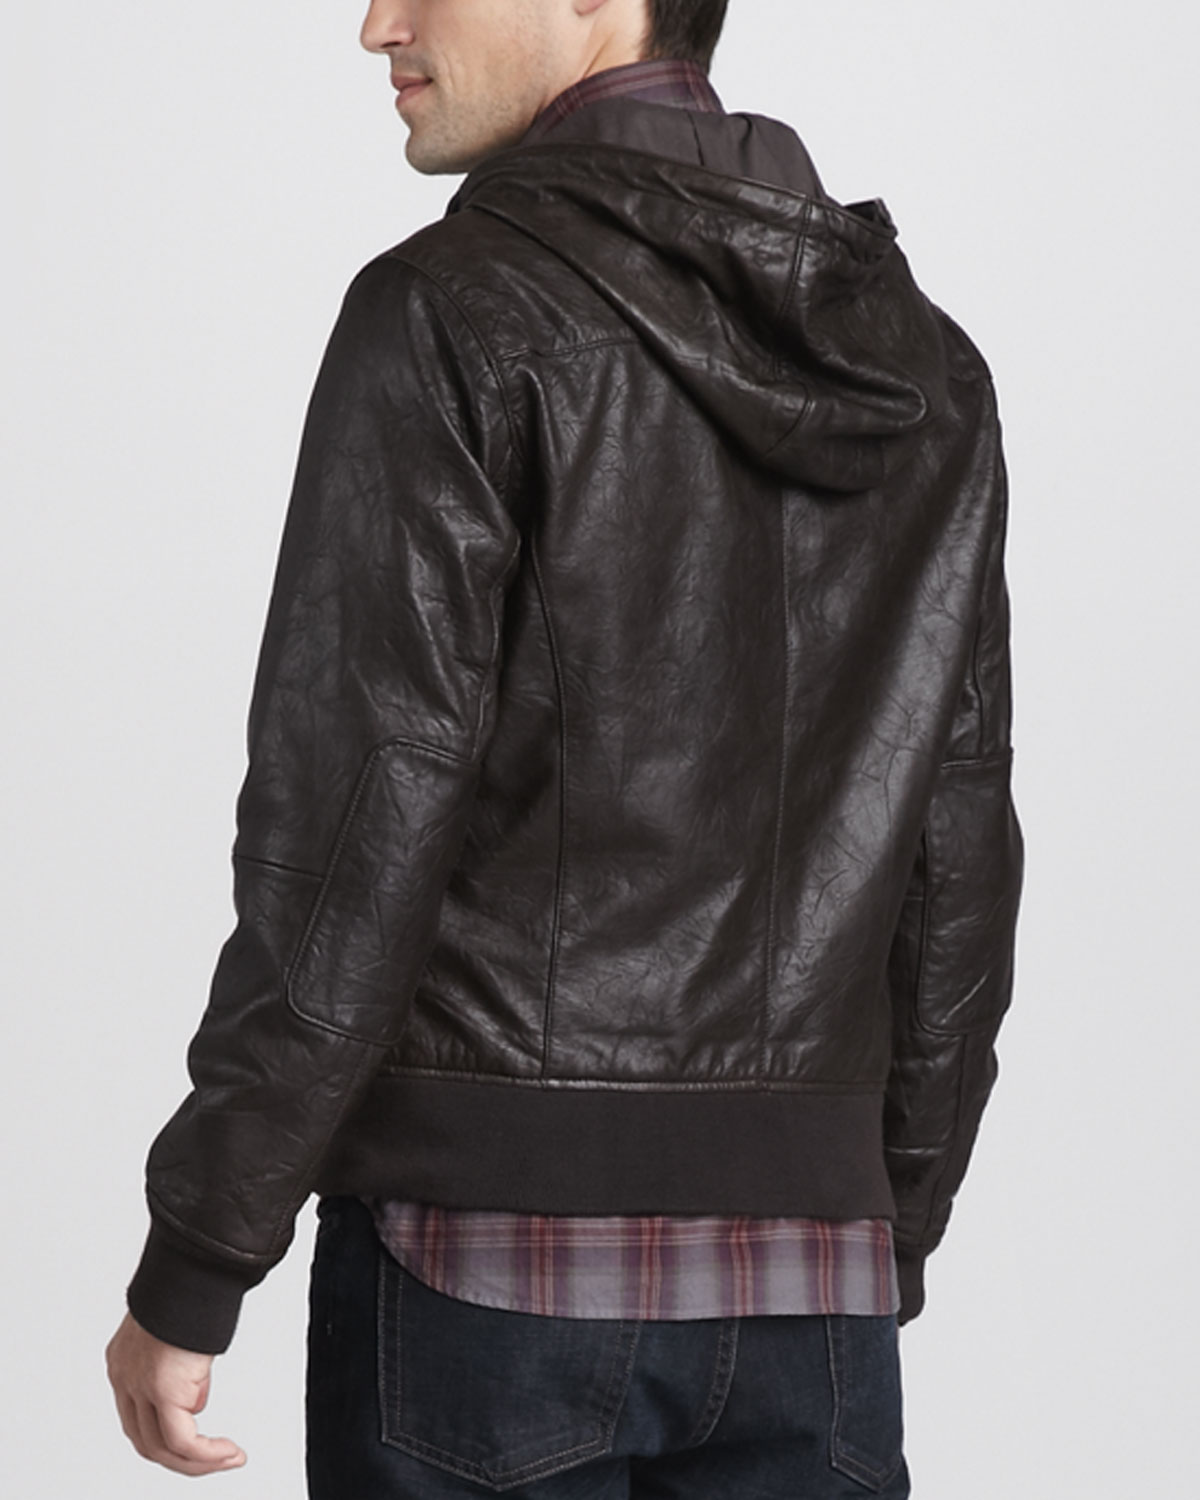 Find great deals on eBay for mens hooded leather bomber jacket. Shop with confidence.